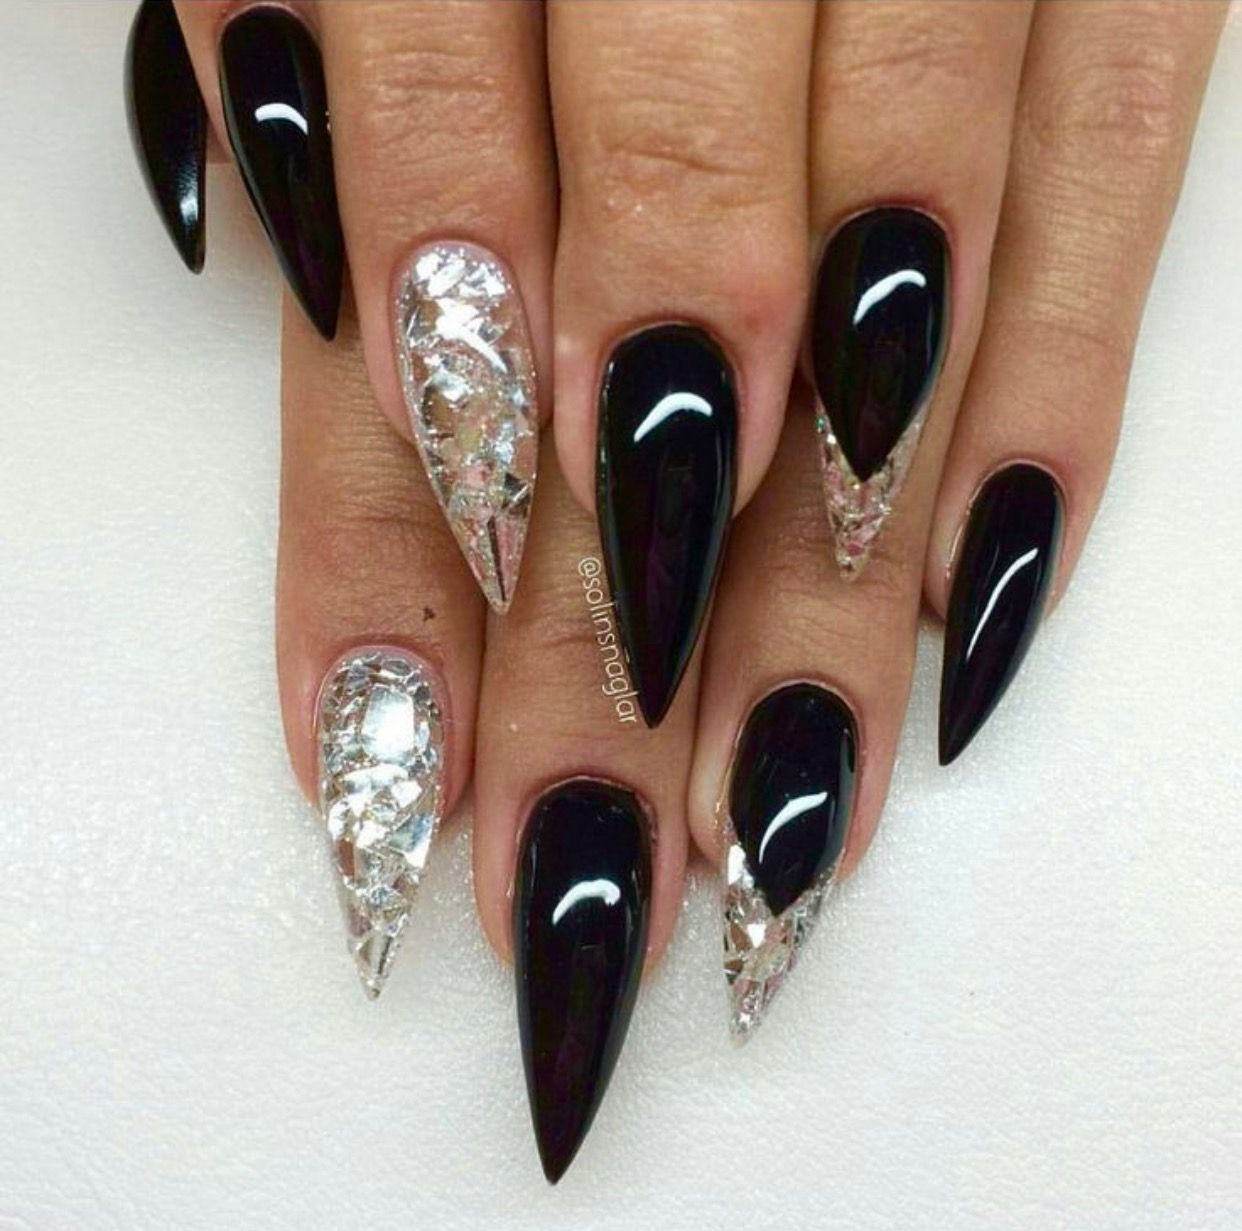 Hate the horrible shape but love the design. Even nail techs laugh ...